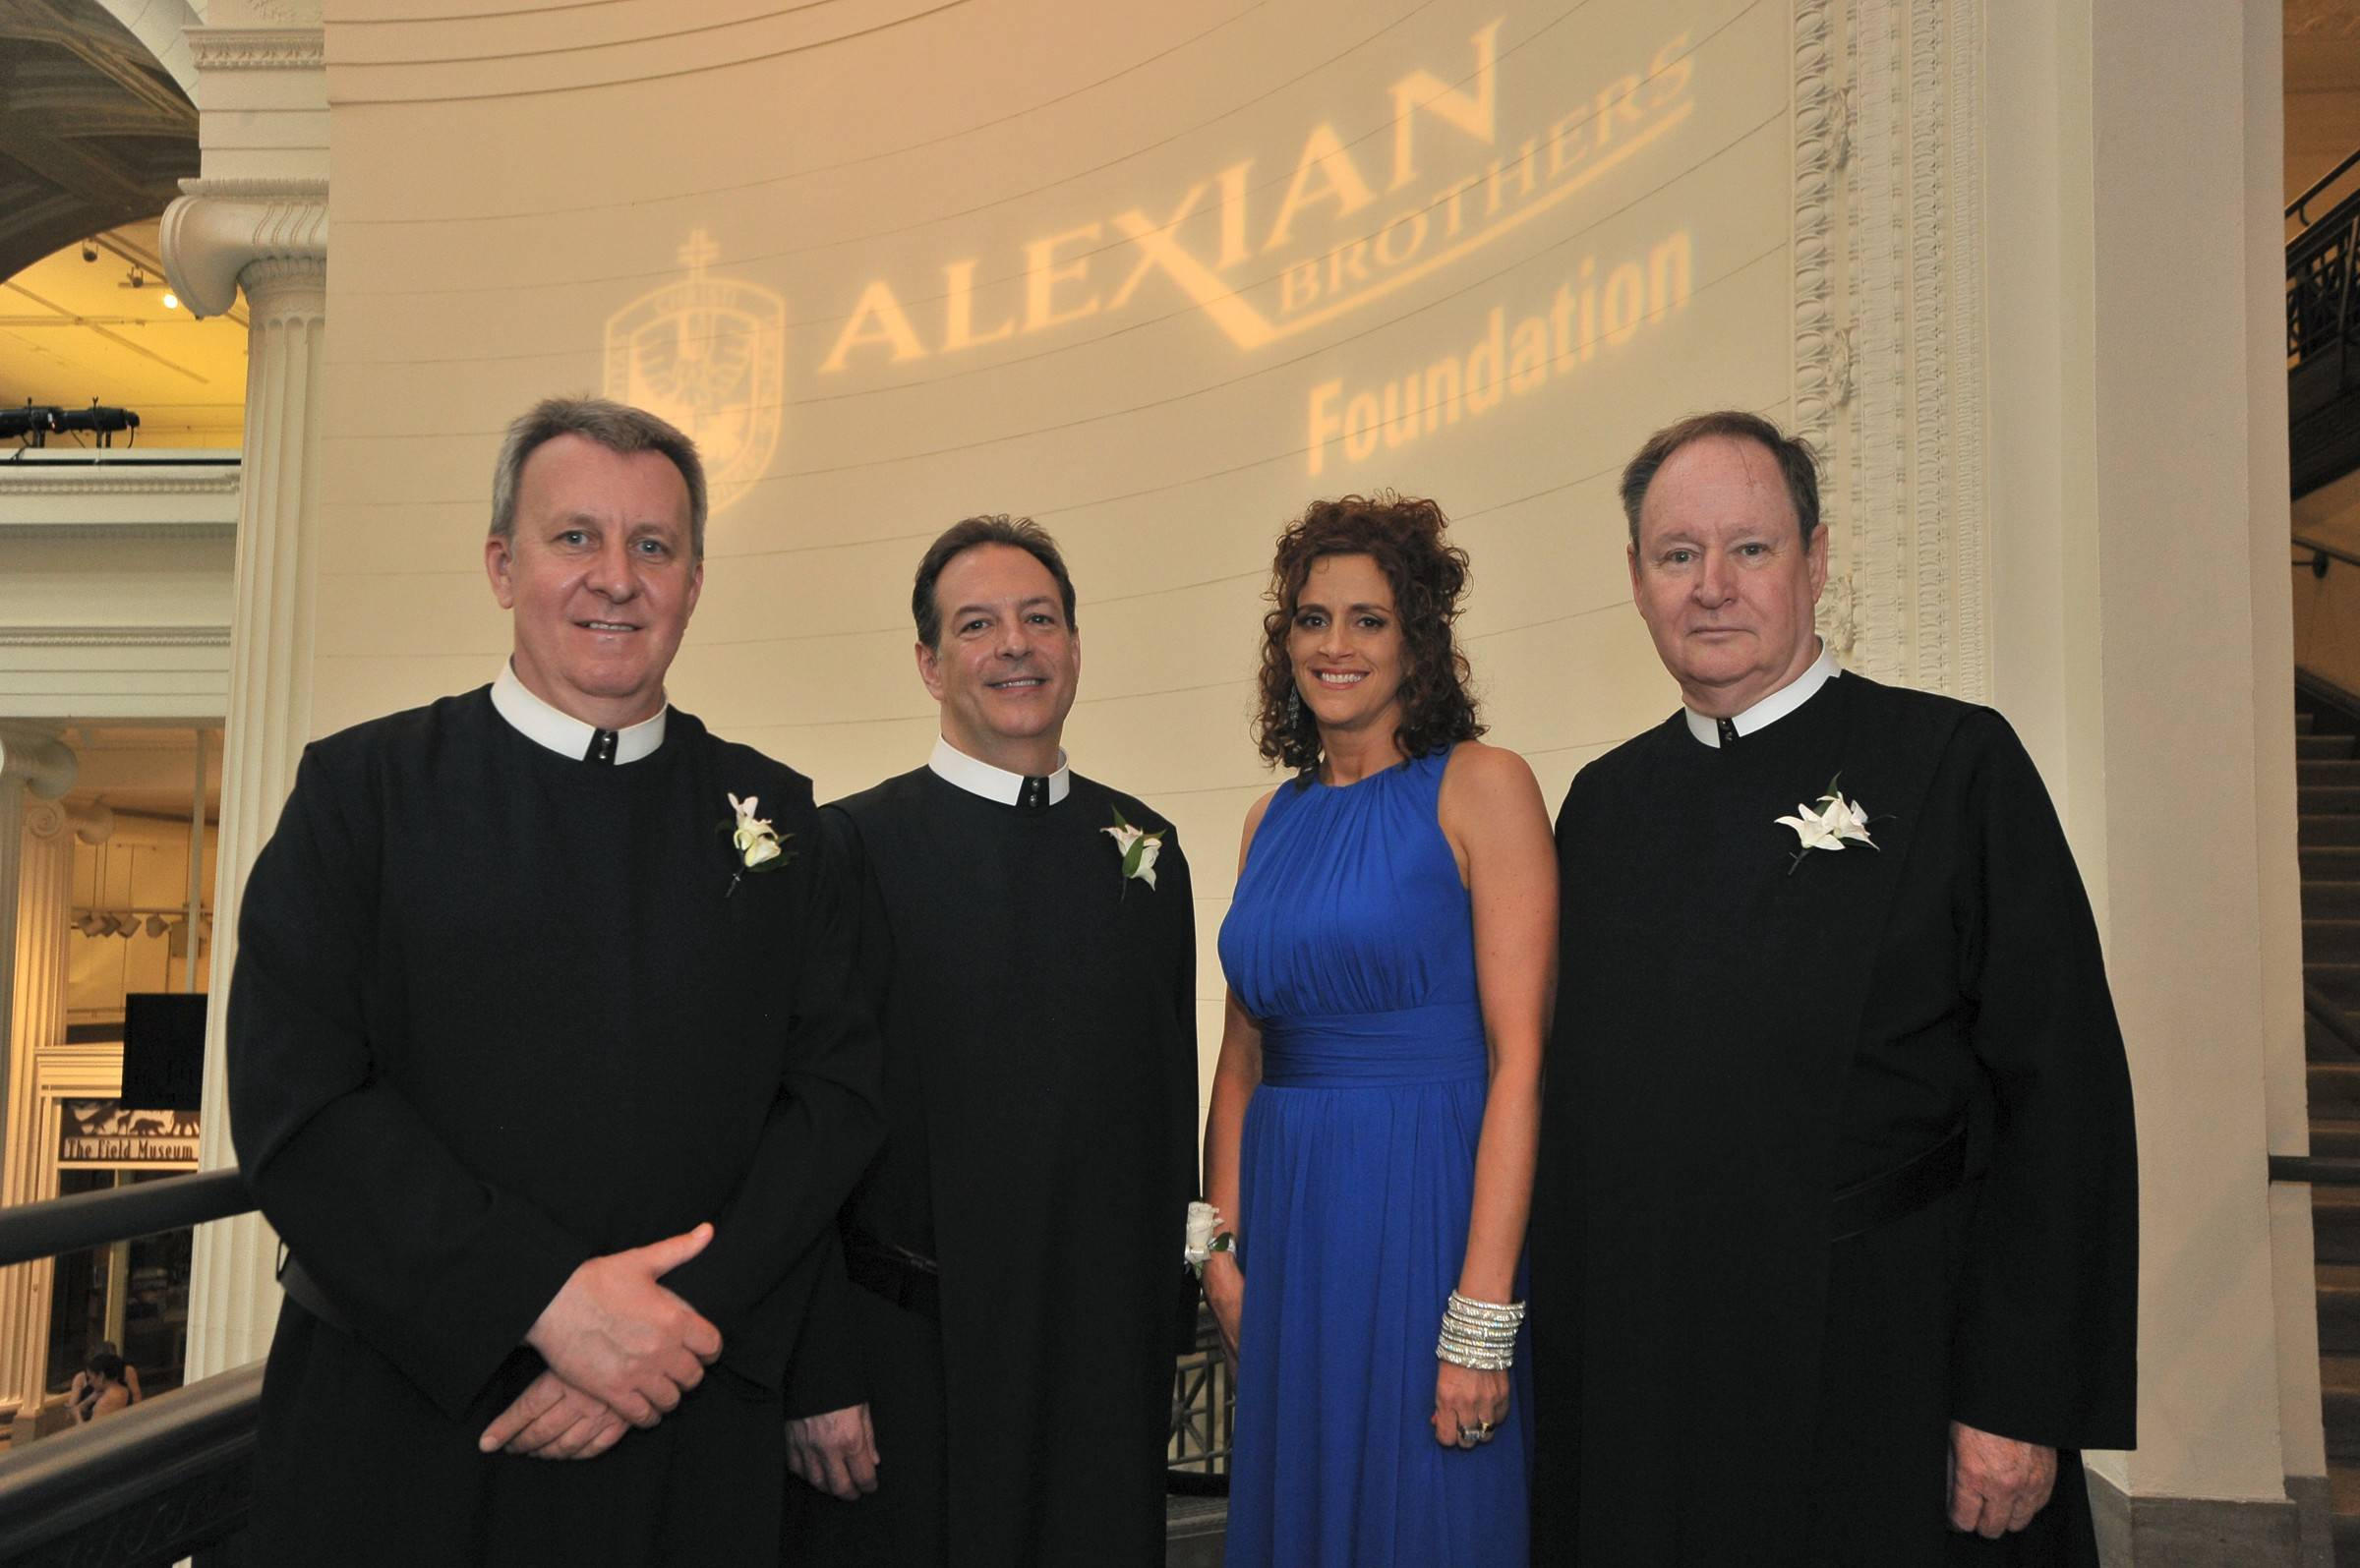 Alexian Brother Paul Magner CFA, Alexian Brothers Tom Klein CFA, Melanie Furlan, vice rresident, advancement, Alexian Brothers Foundation, and Brother Daniel McCormick, CFS Provincial, Alexian Brothers Immaculate Conception Province at the 28th Annual Alexian Brothers Ball de Fleur on Saturday at the Field Museum.